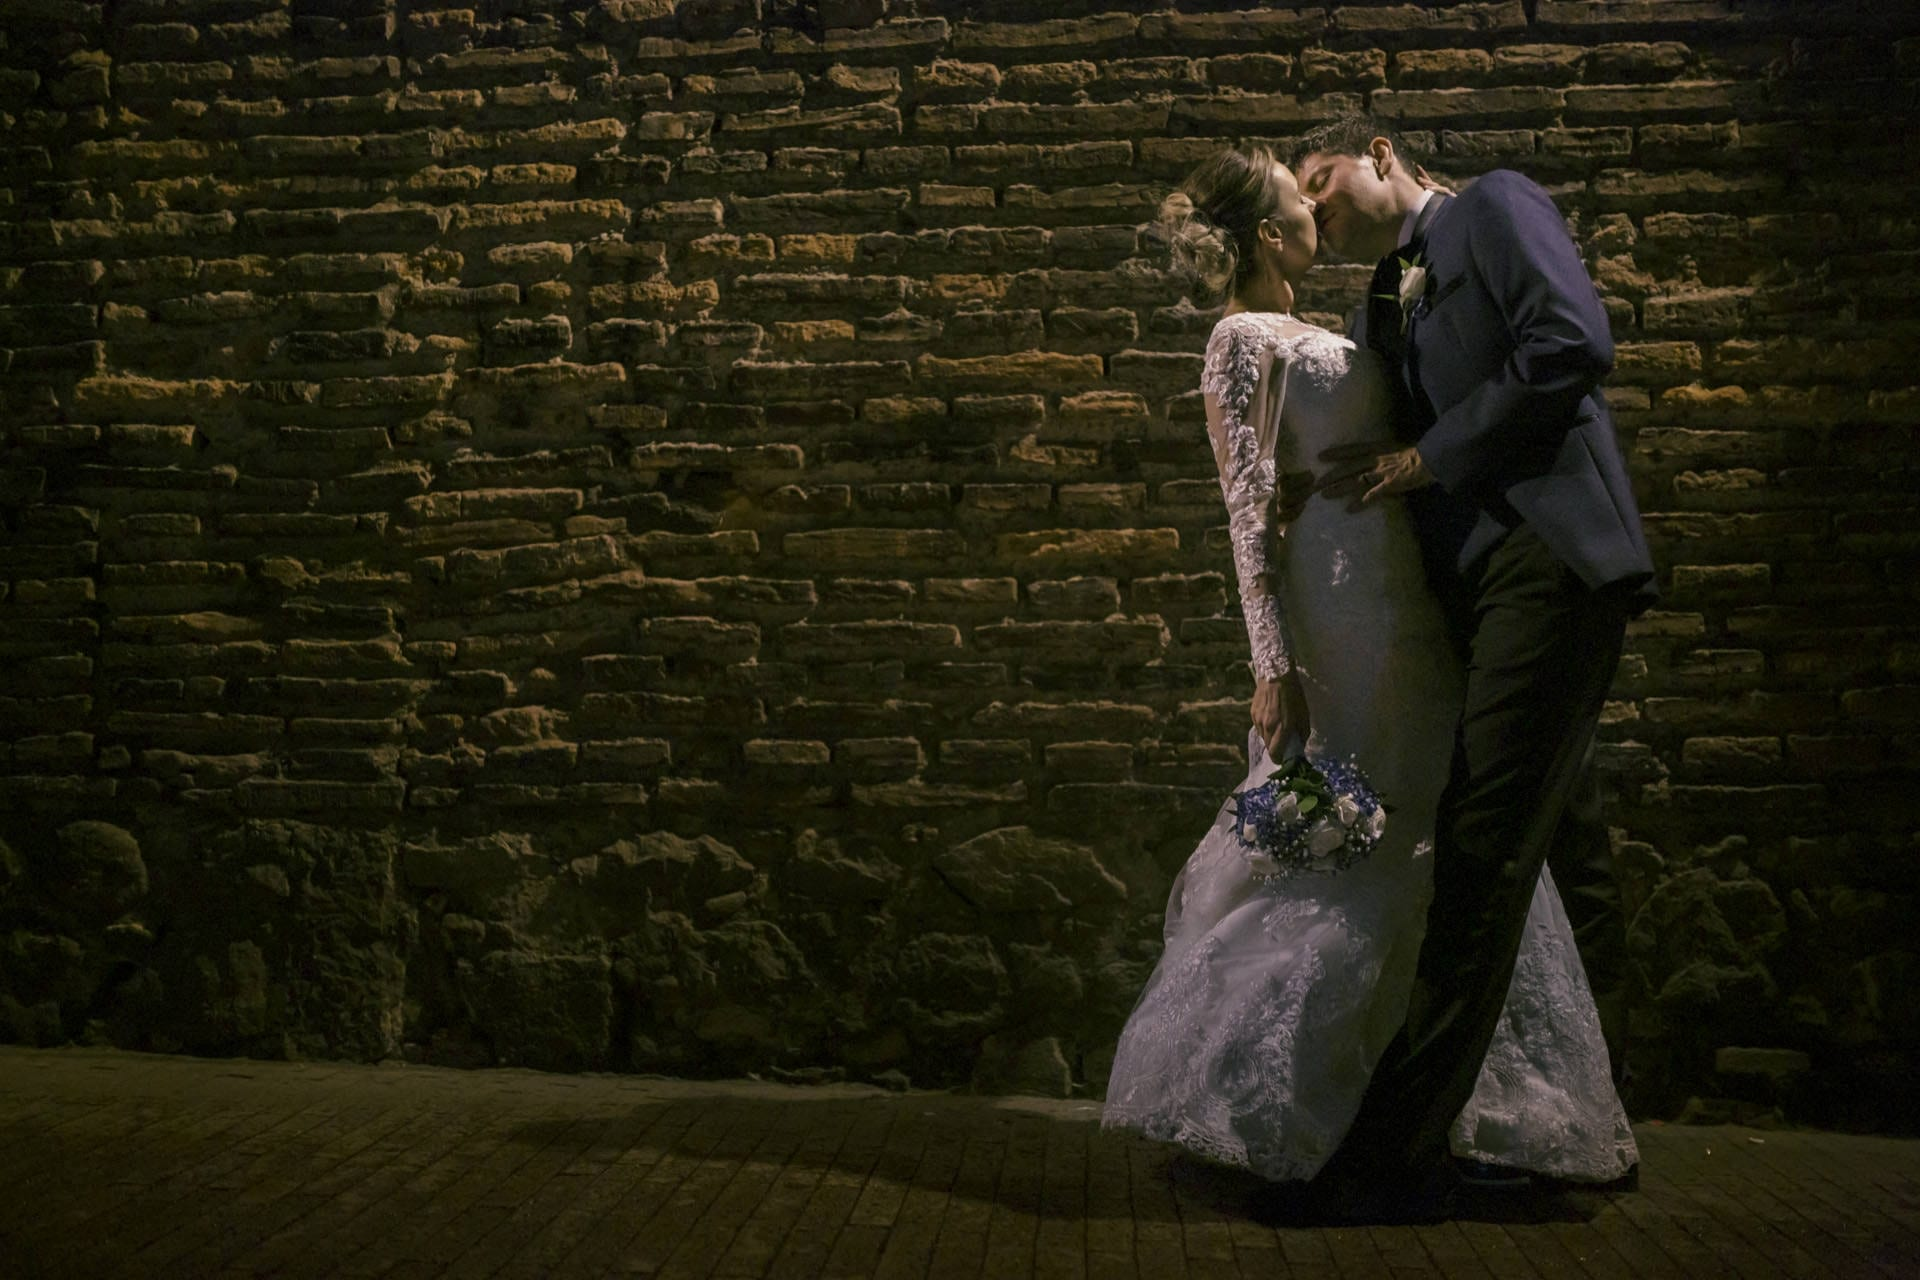 Us kissing on the streets of our beloved Bogota on our wedding day